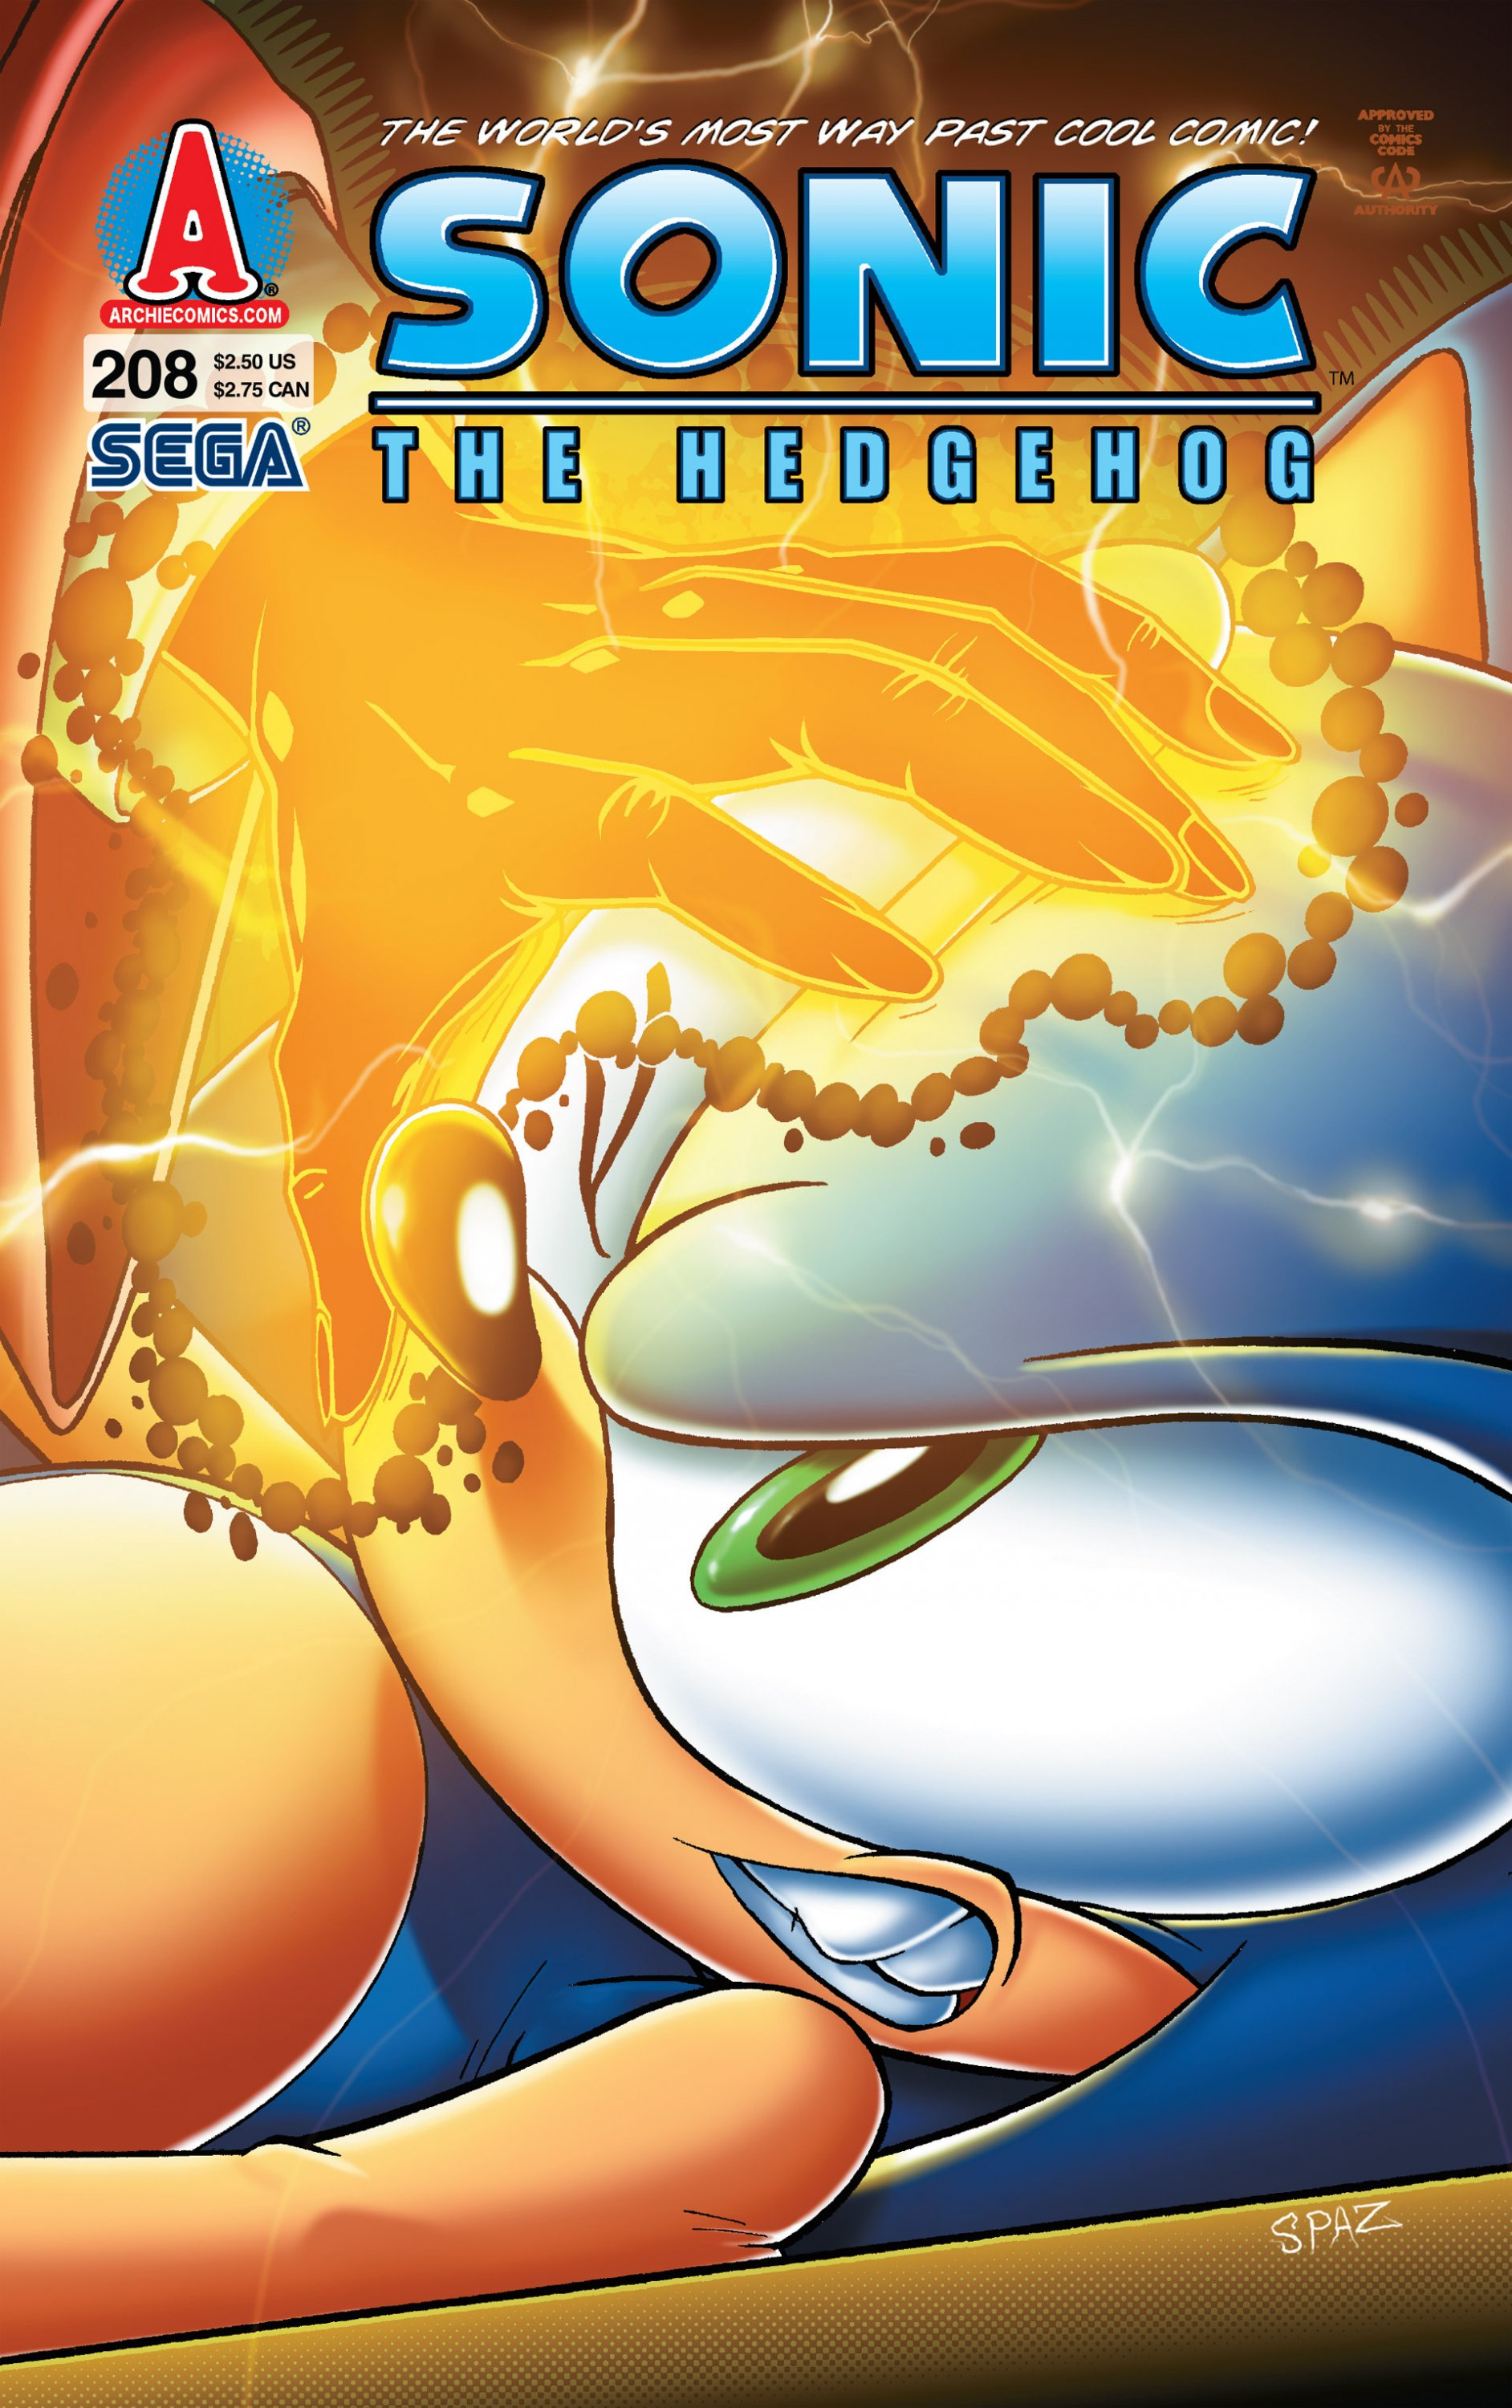 Sonic the Hedgehog 208 (March 2010)